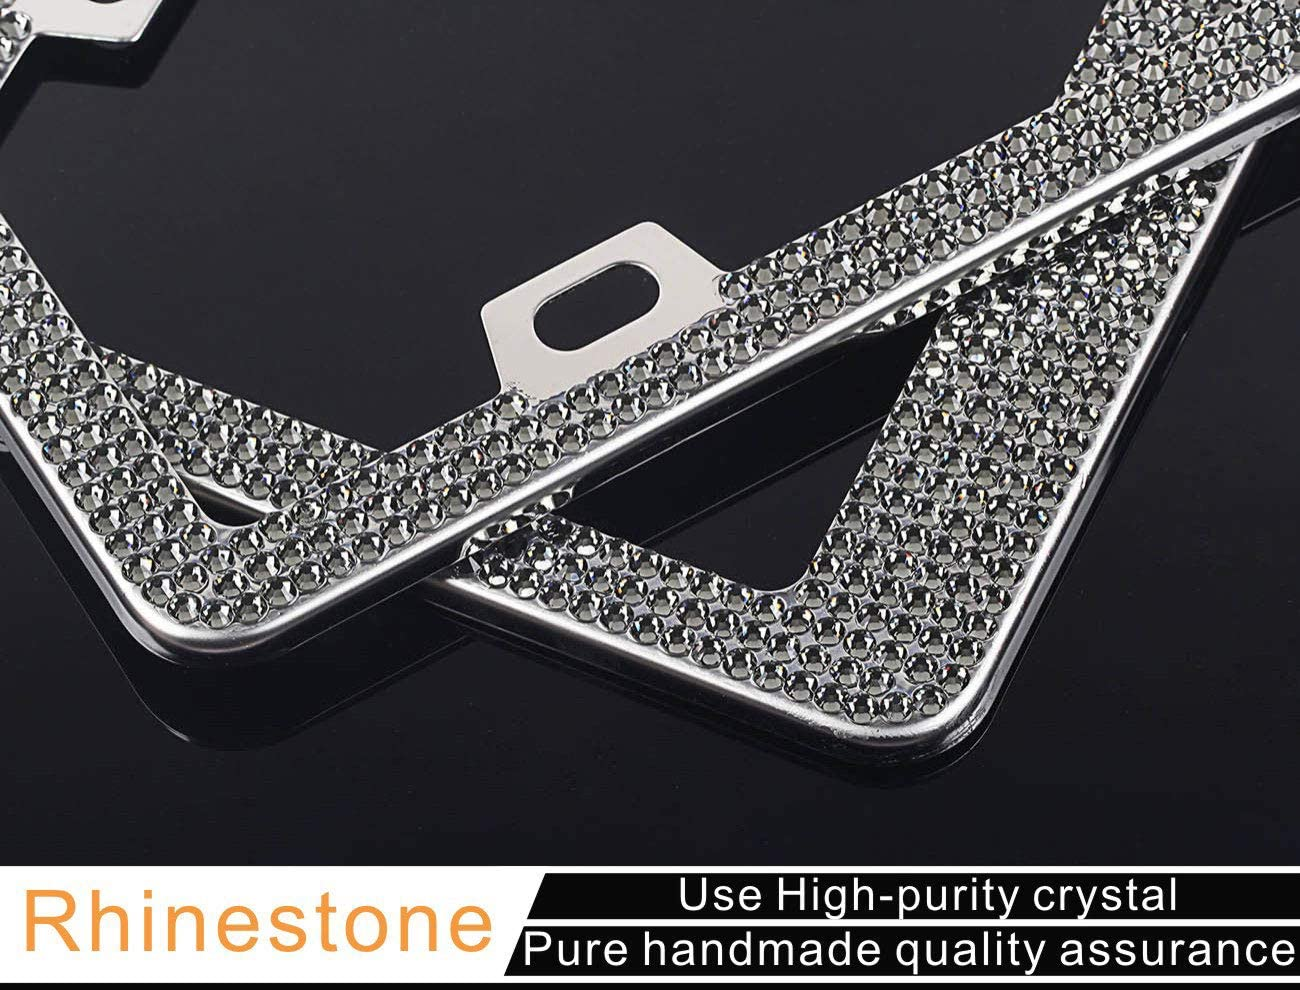 RUNONE 2 Pack Bling License Plate Frames For Women Girl,Sparkly Luxury Glitter Rhinestone License Plate Covers Set,2 Holes Shiny Iridescent Cute Crystal Diamond Car Stainless Steel Holder AB Colorful